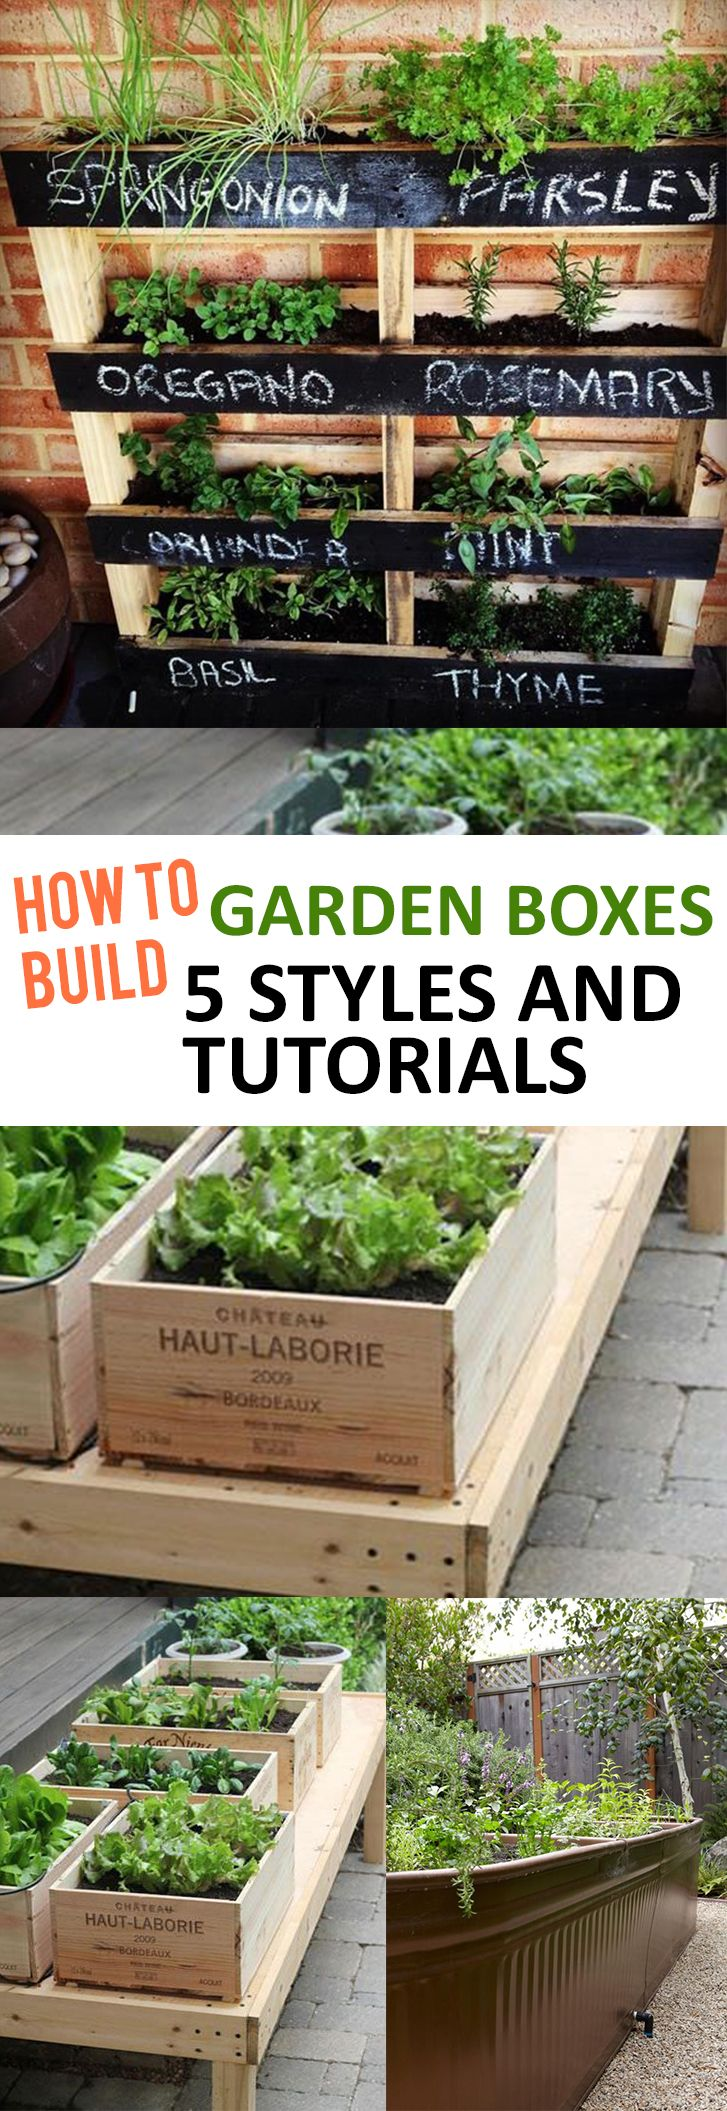 Build a vegetable garden box - How To Build Garden Boxes 5 Styles And Tutorials